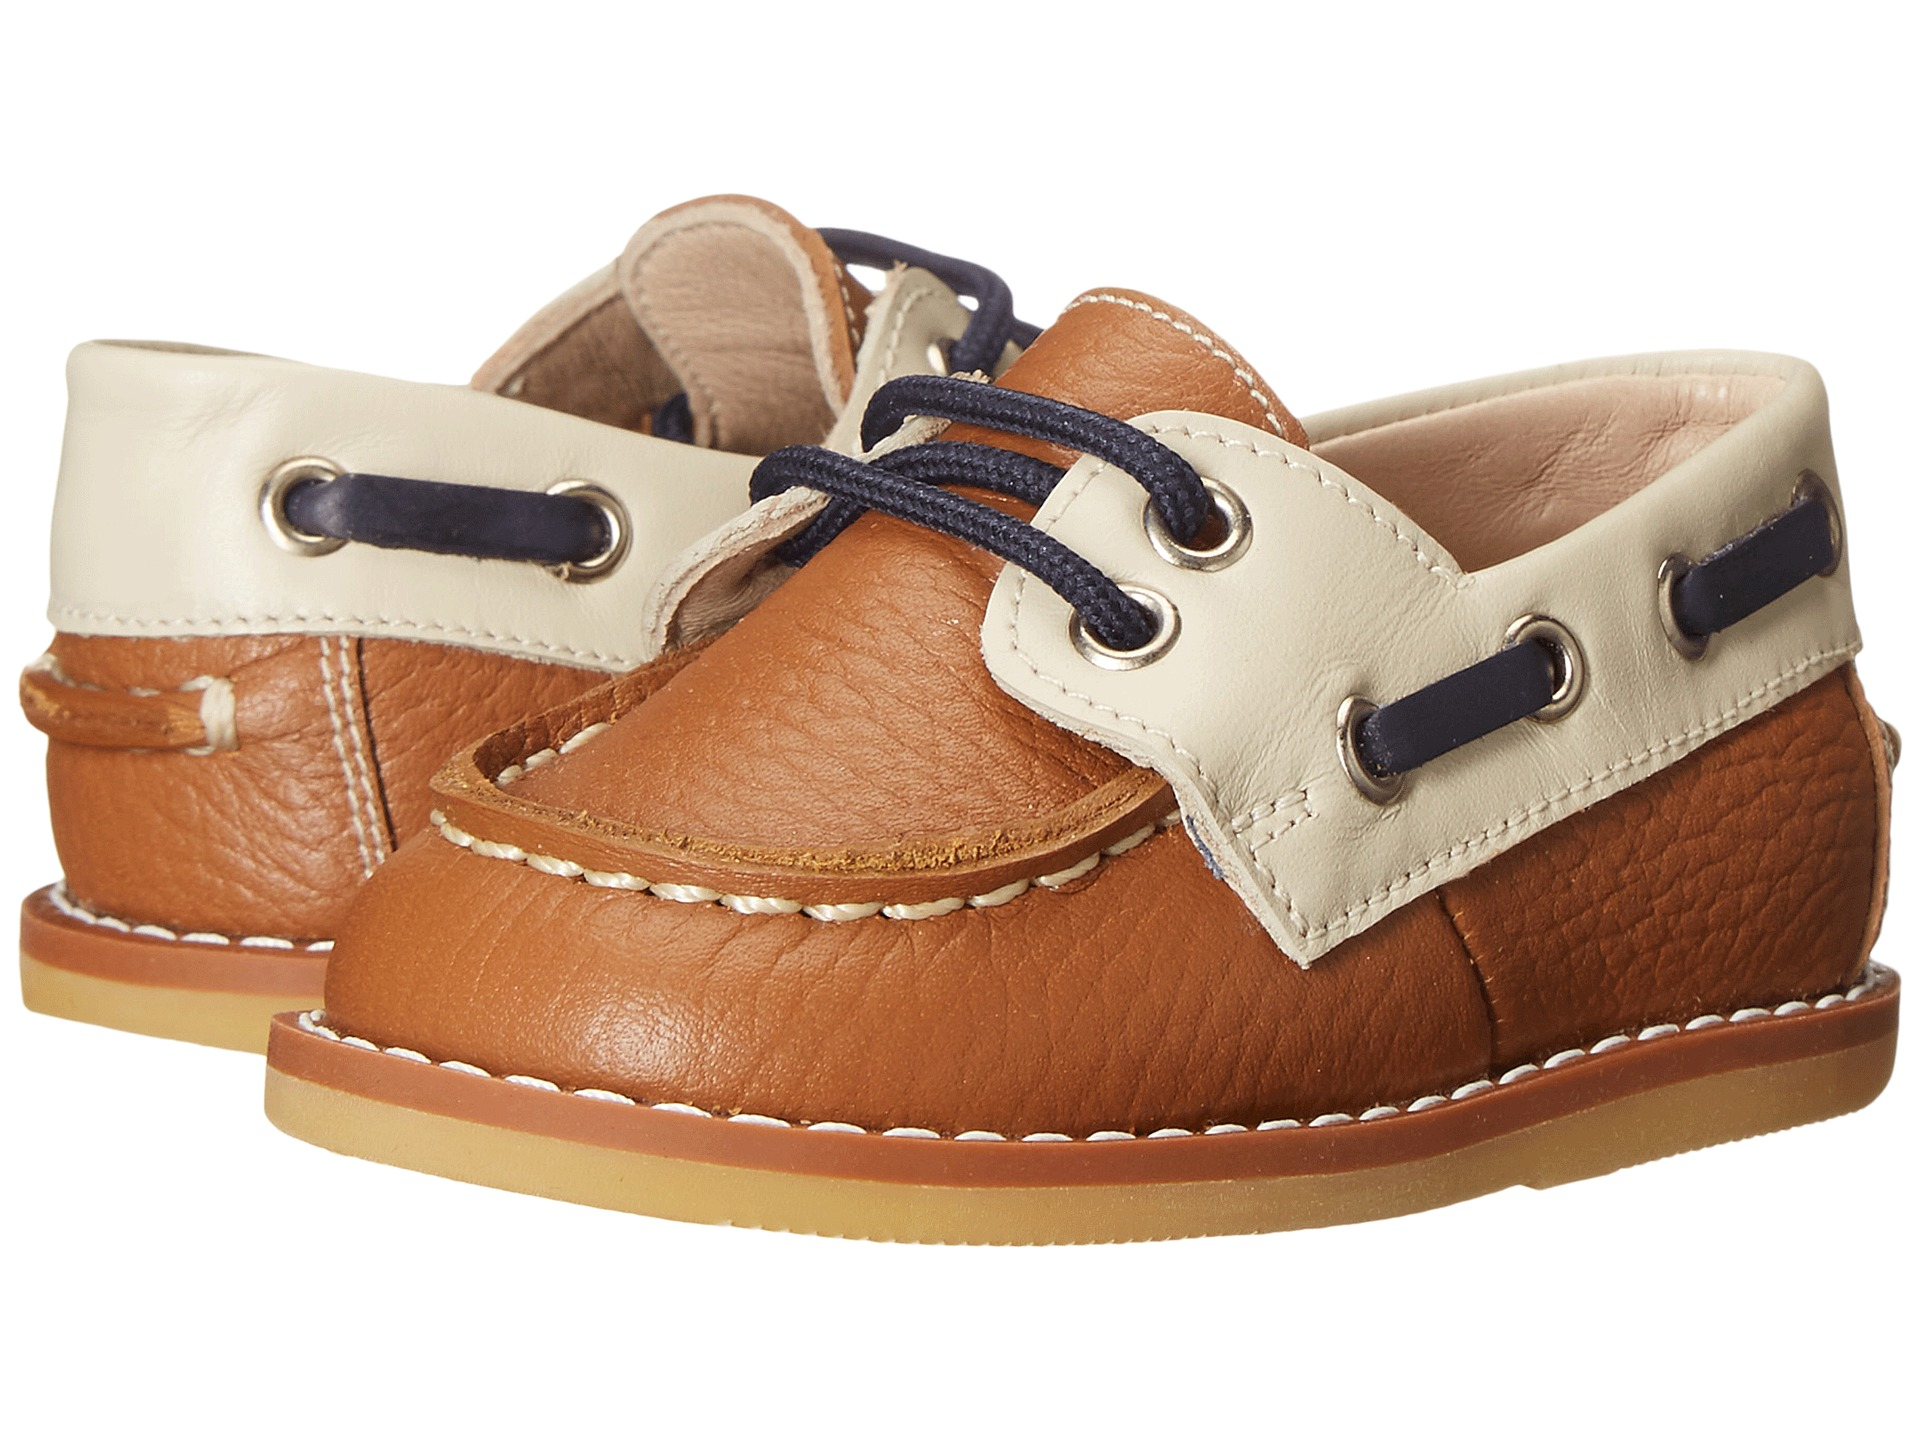 Elephantito Boat Shoes (Infant/Toddler) at Zappos.com